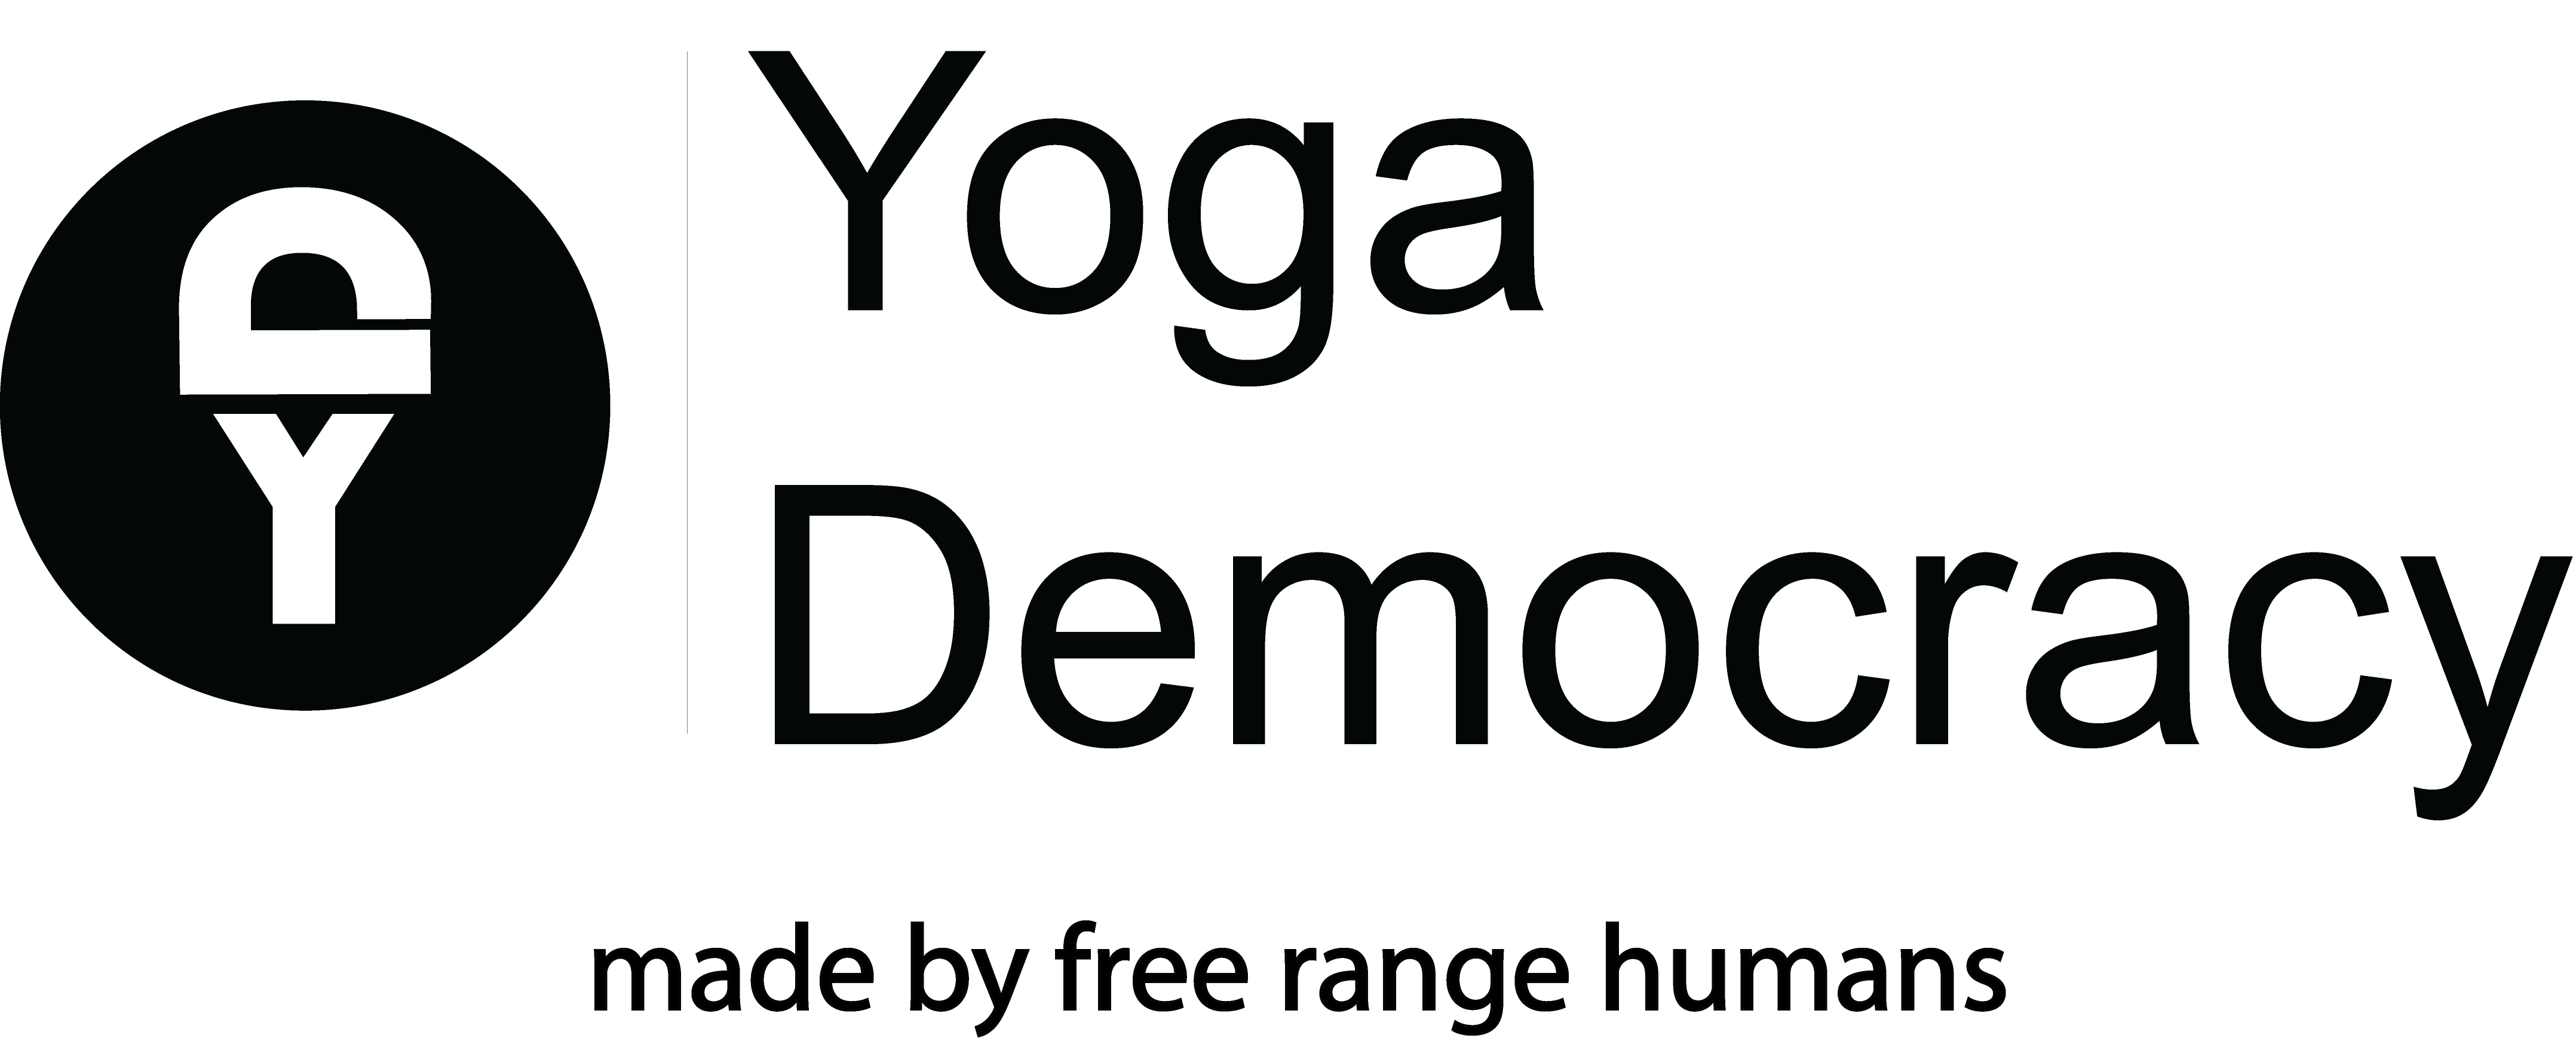 yoga democracy logo, the letter y is in the middle of a black circle with the letter d laying horizontally on top of the y